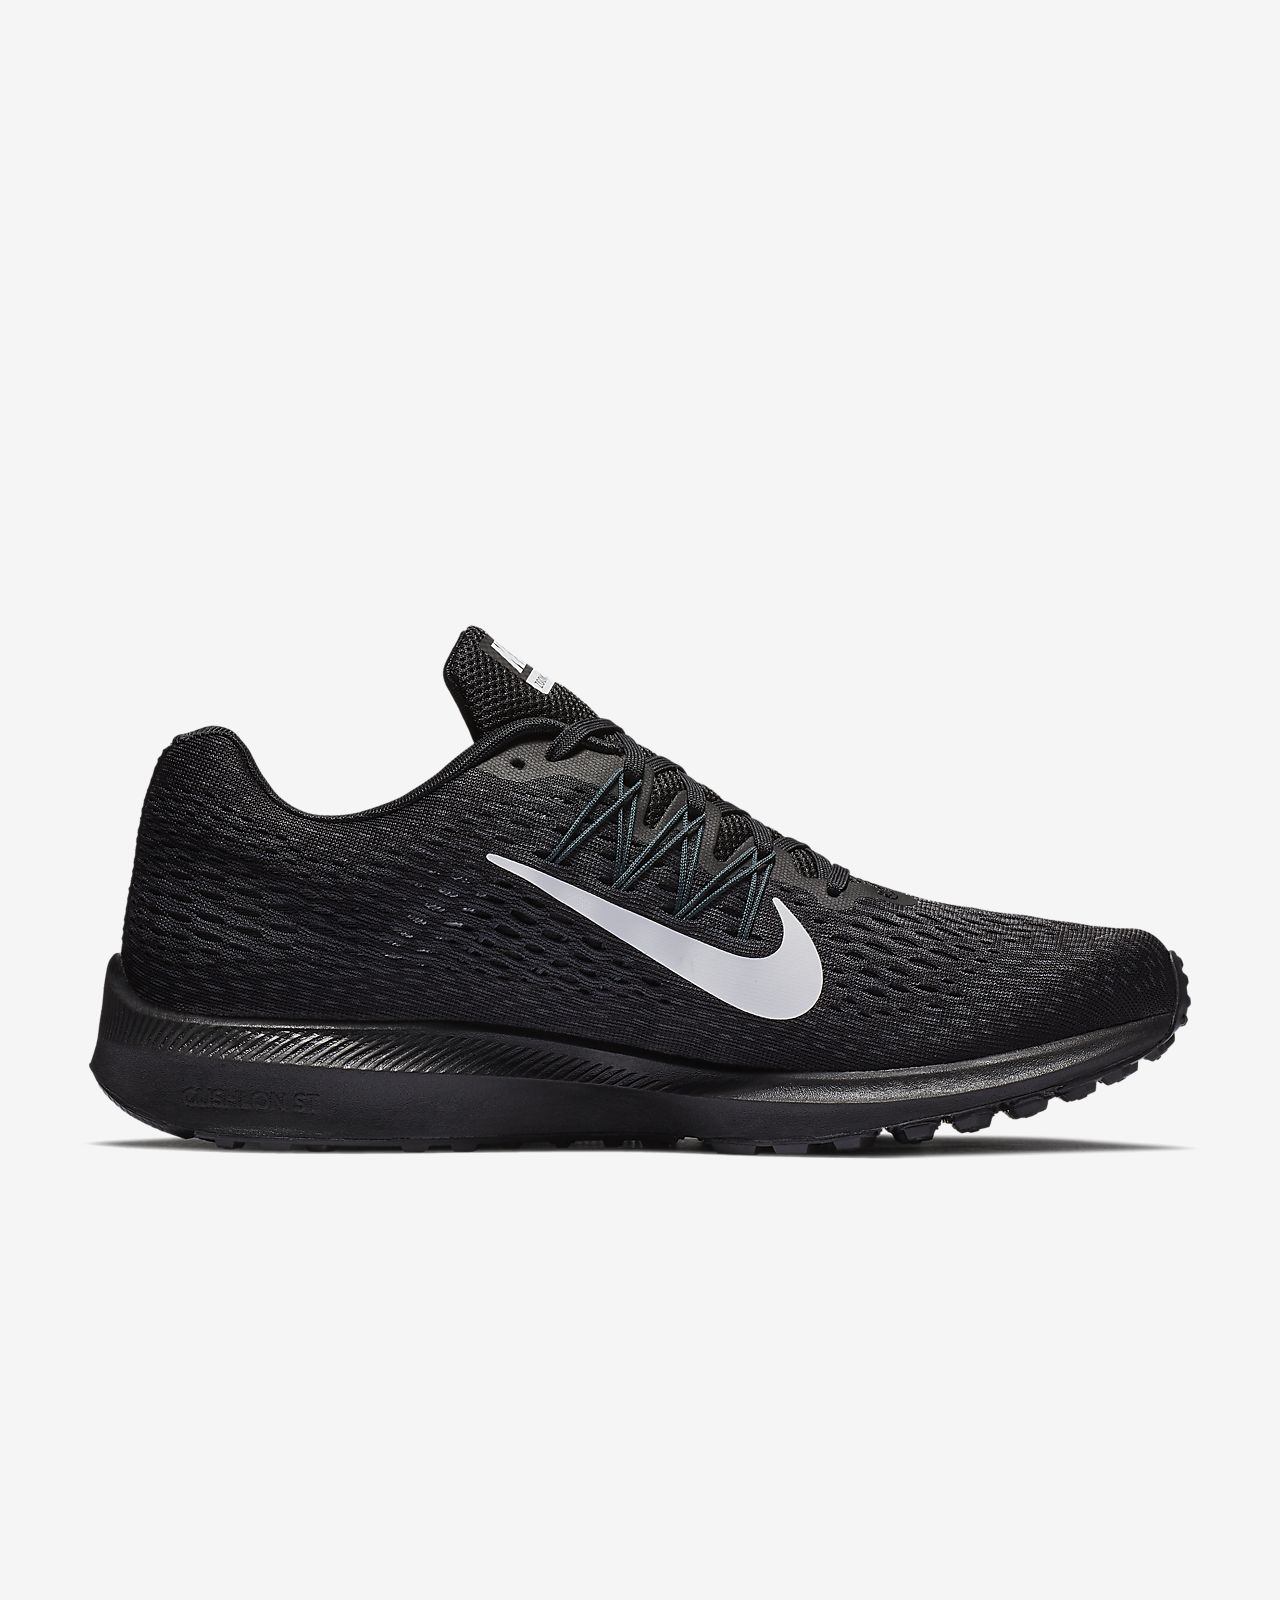 bcf469899dba netherlands nike mens zoom winflo 4 running shoes white black wolf grey  a35bf 15780  50% off nike air zoom winflo 5 bda5c 9bd14